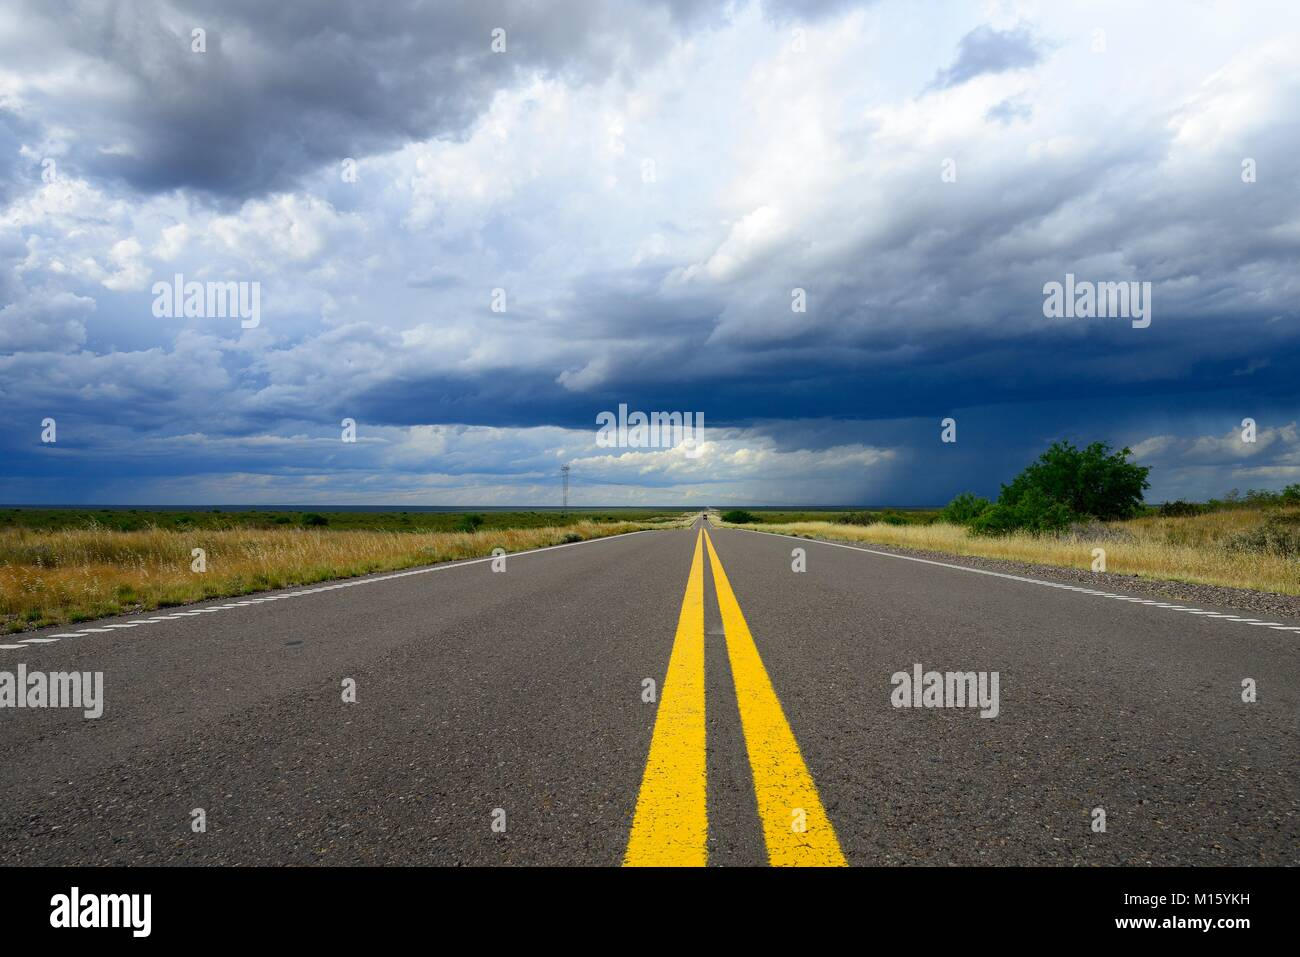 View over the asphalt of the Ruta RN35 with dark rain clouds,province of La Pampa,Patagonia,Argentina - Stock Image